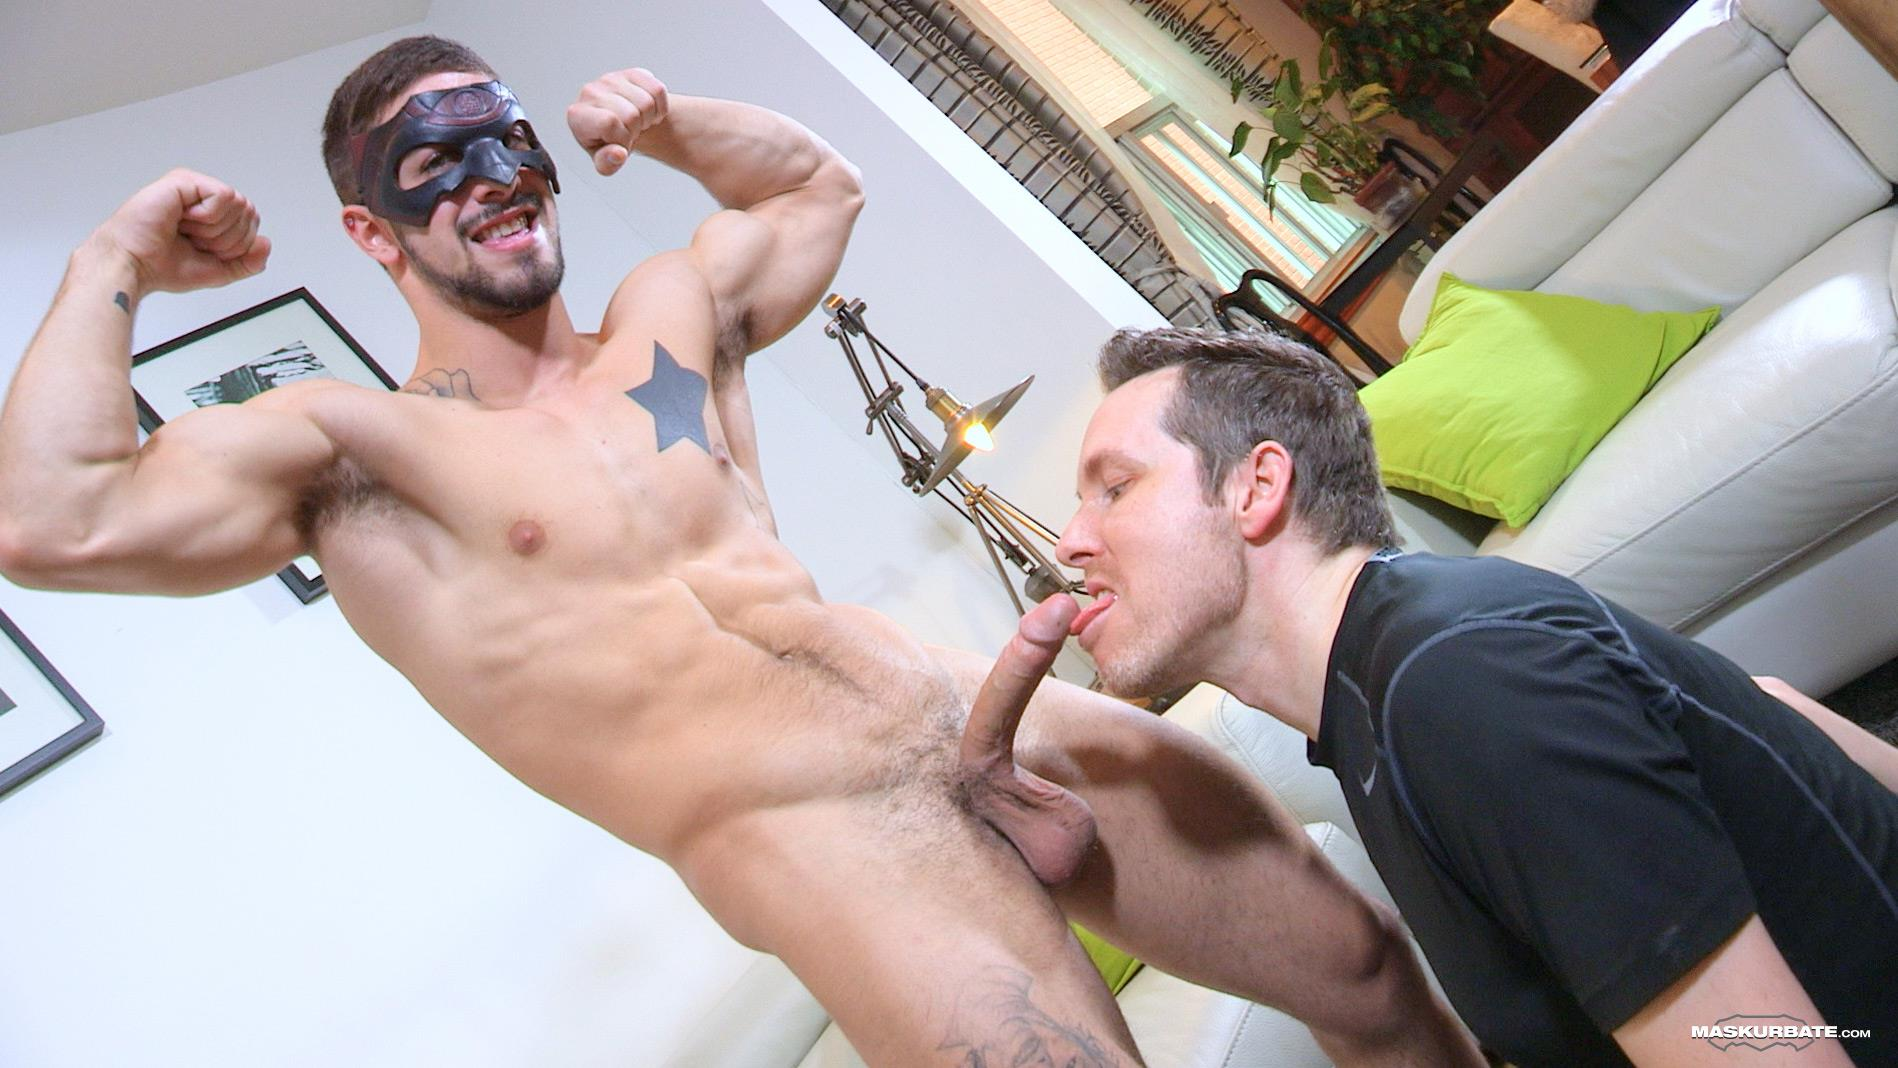 Maskurbate-Carl-Straight-Muscle-Jock-With-A-Big-Cock-Amateur-Gay-Porn-11 Straight Muscle Hunk Gets His First Blow Job From Another Guy